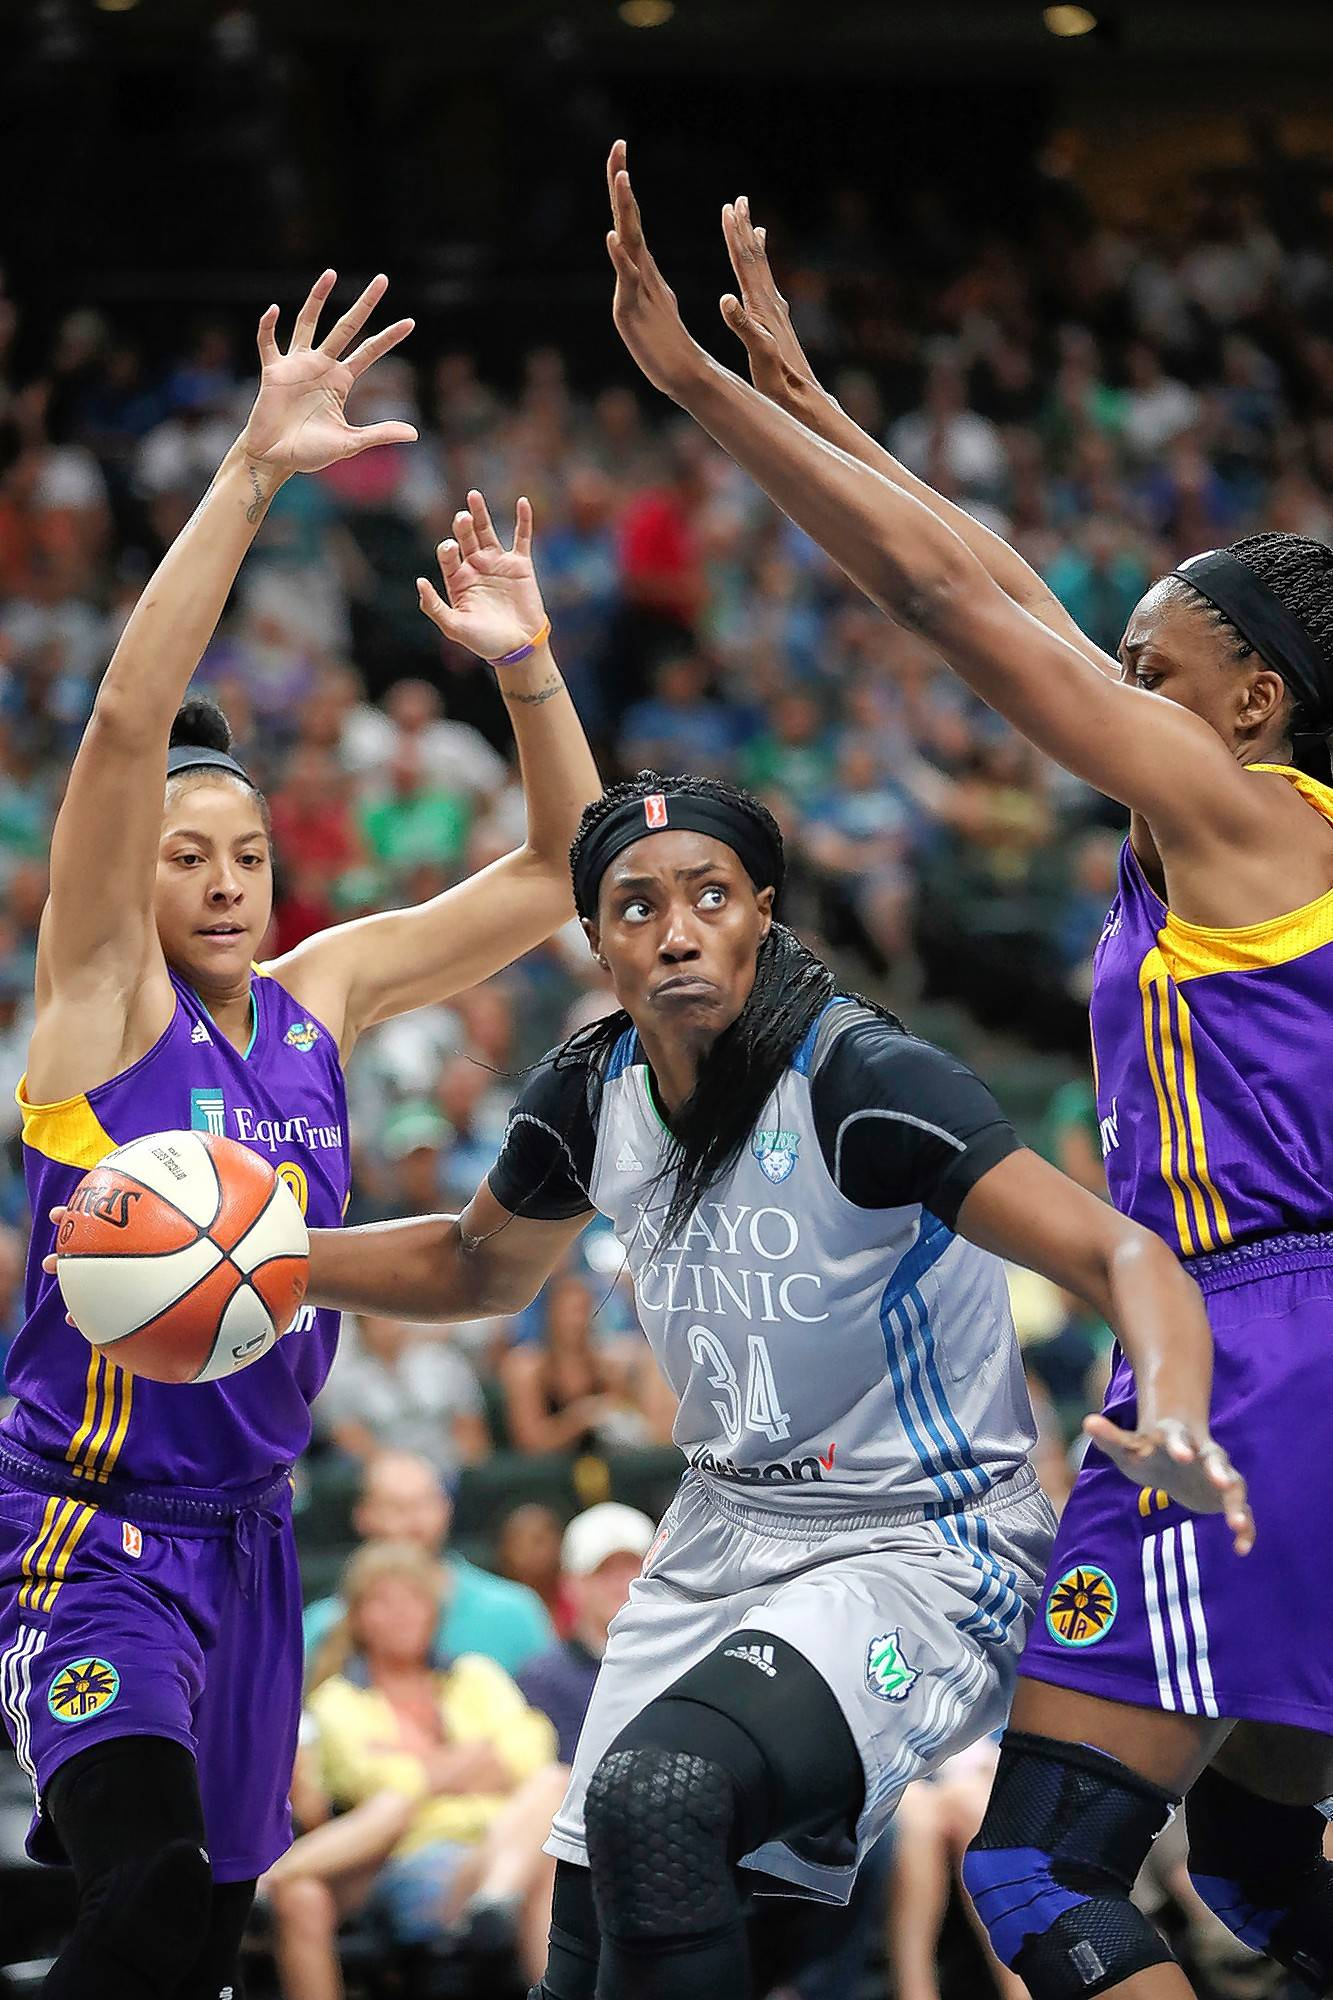 Minnesota Lynx, center Sylvia Fowles was named WNBA's Player of the Year by the Associated Press on Tuesday, a title that had eluded Fowles for the first nine years of her career. Fowles spent seven years with the Chicago Sky before being traded in 2014.